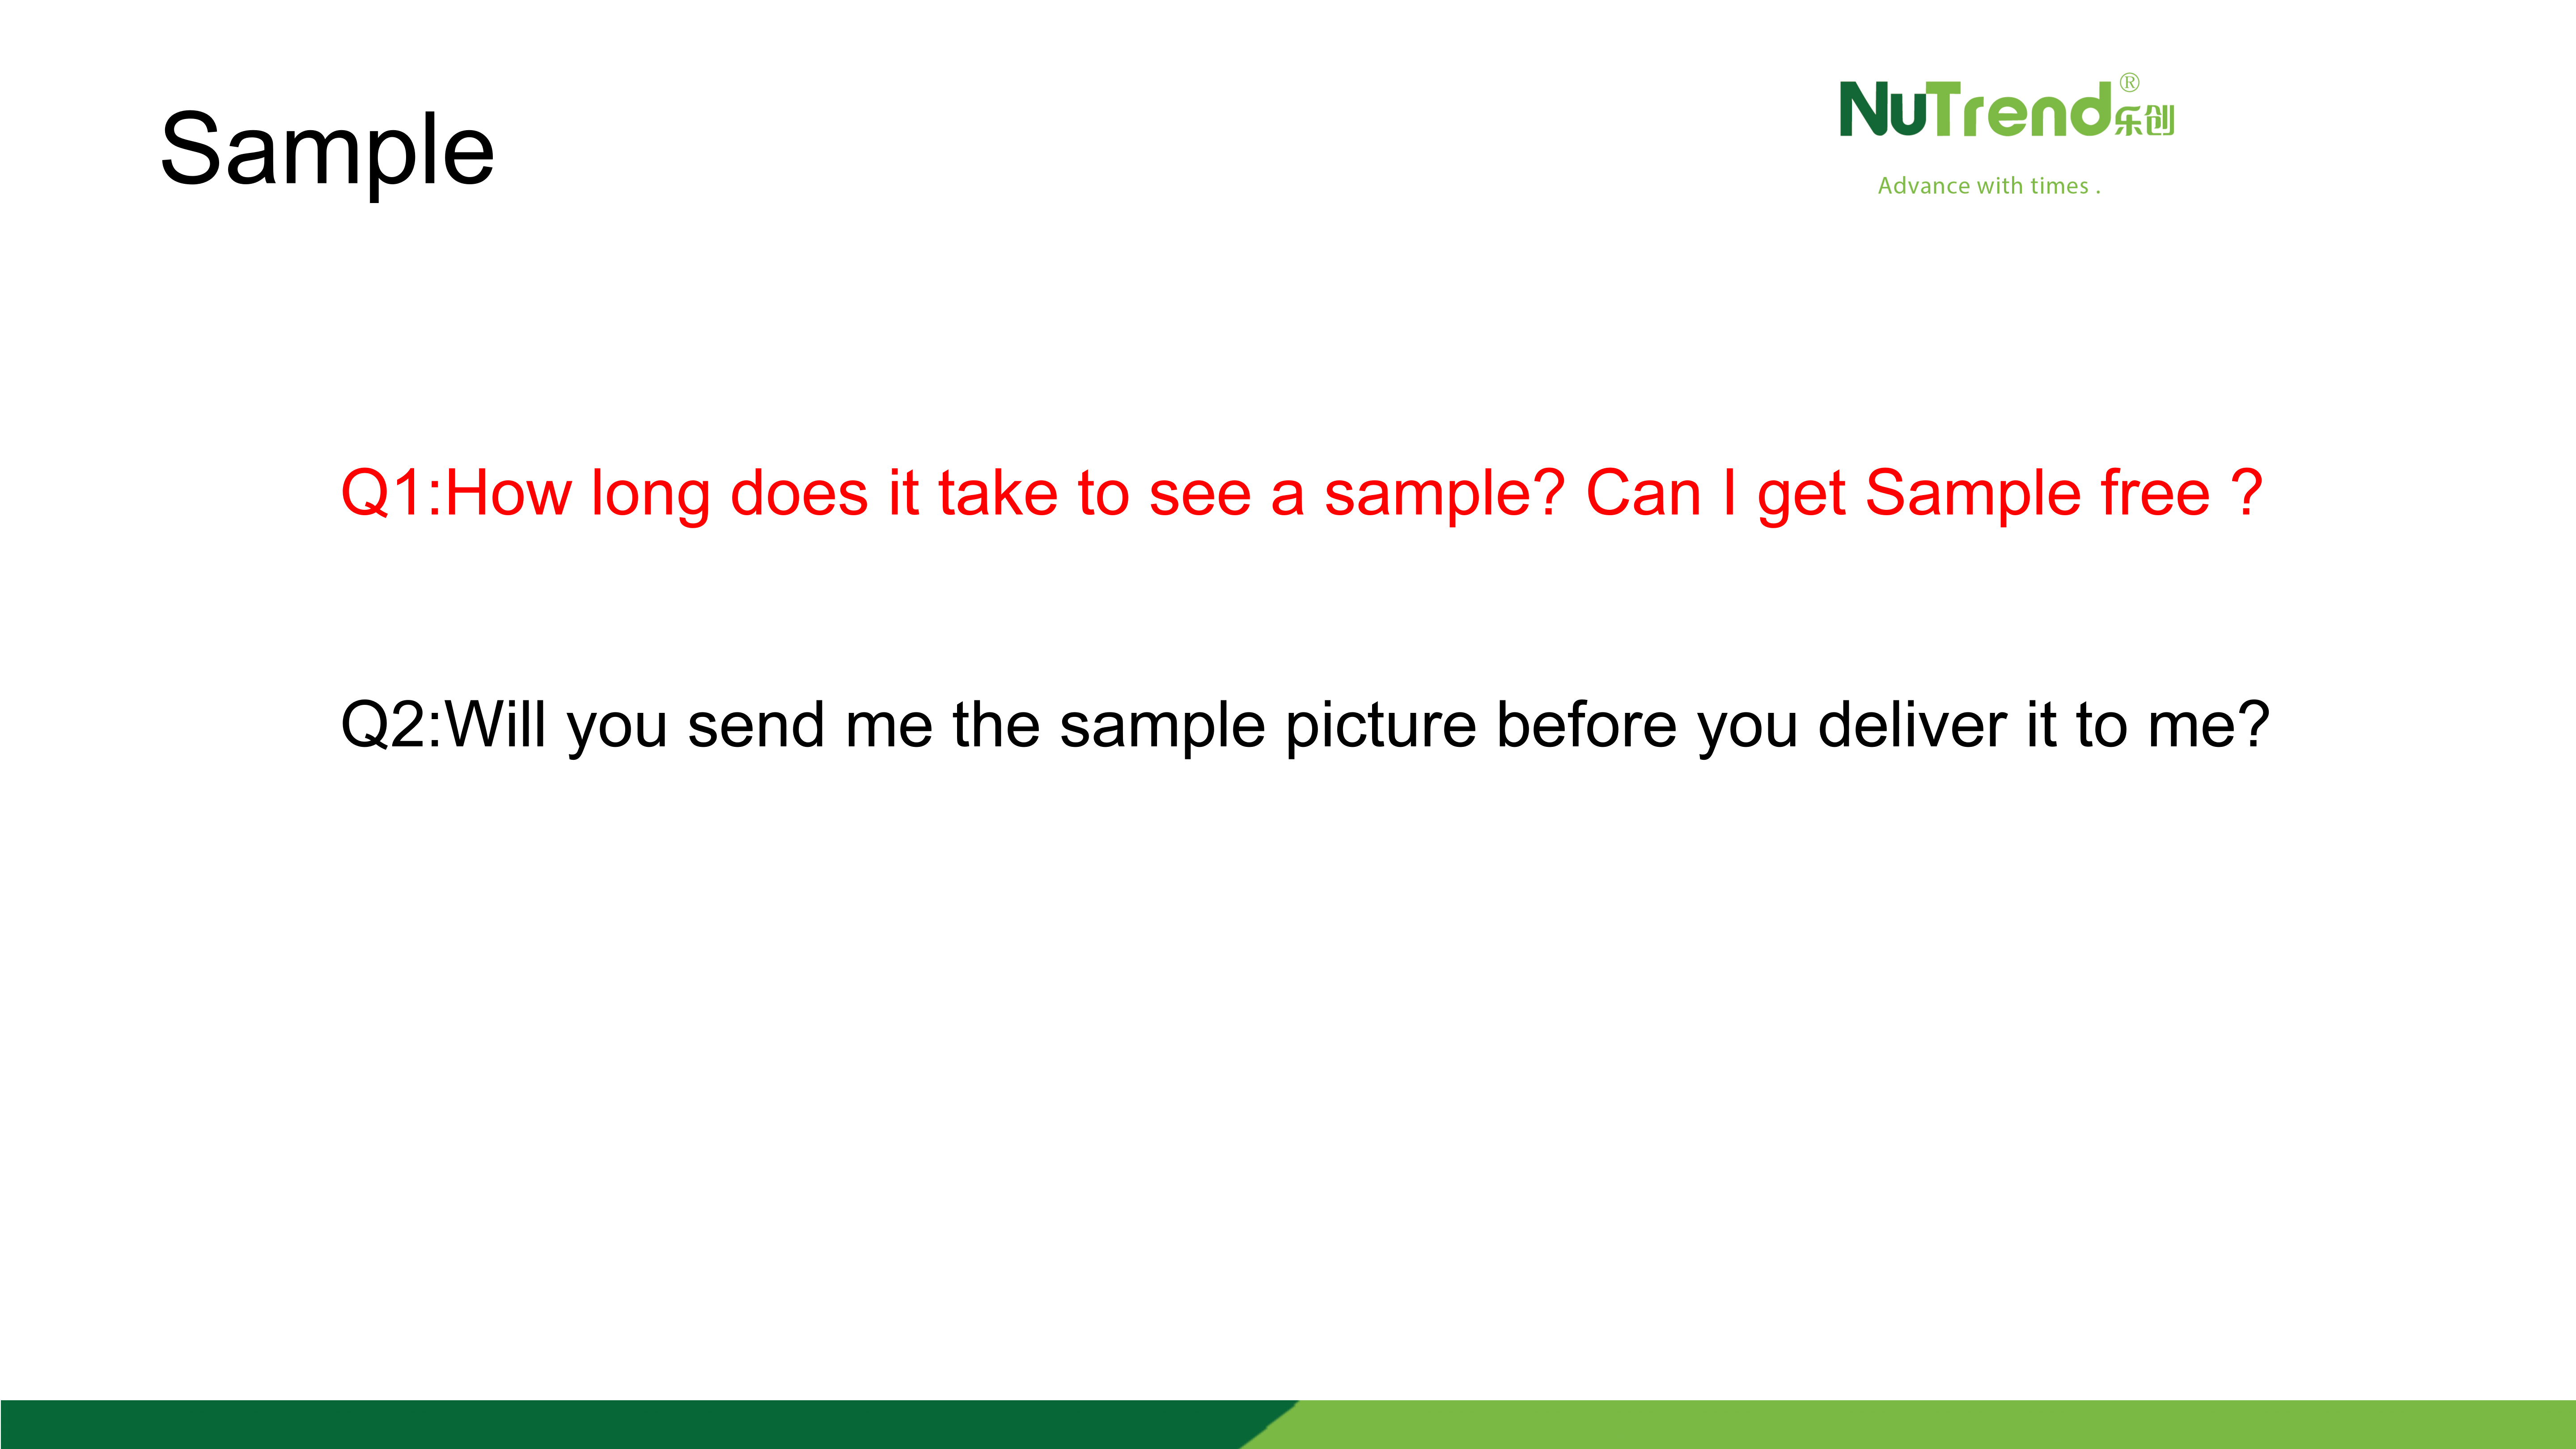 About Sample